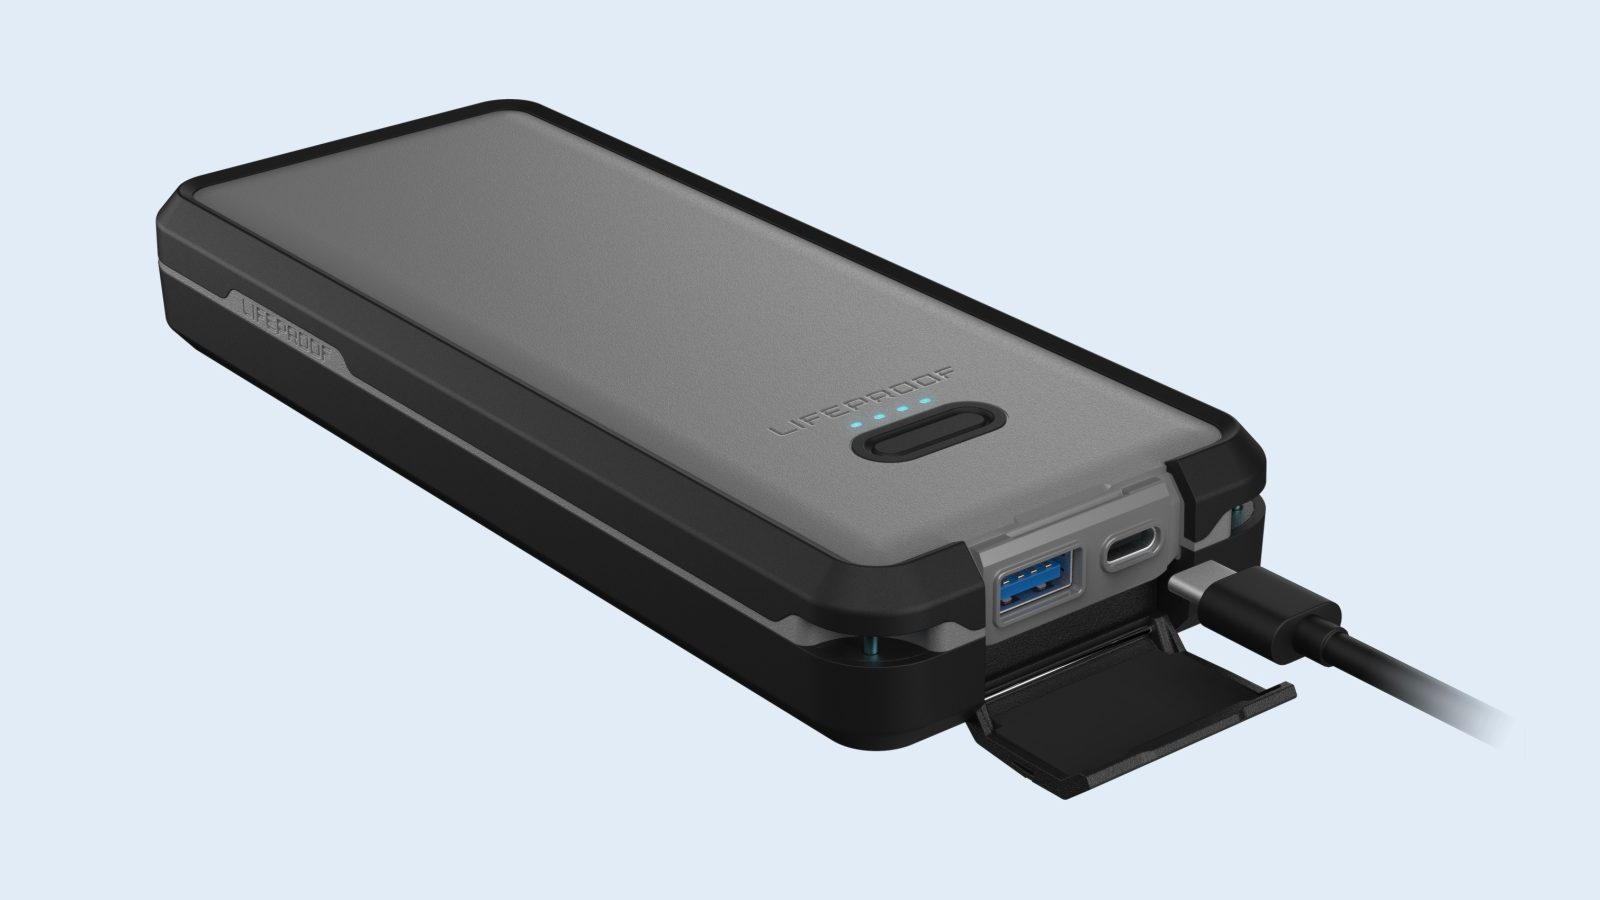 photo of LifeProof's Lifeactív Power Pack 10 now available with Qi wireless charging, waterproof design, more image